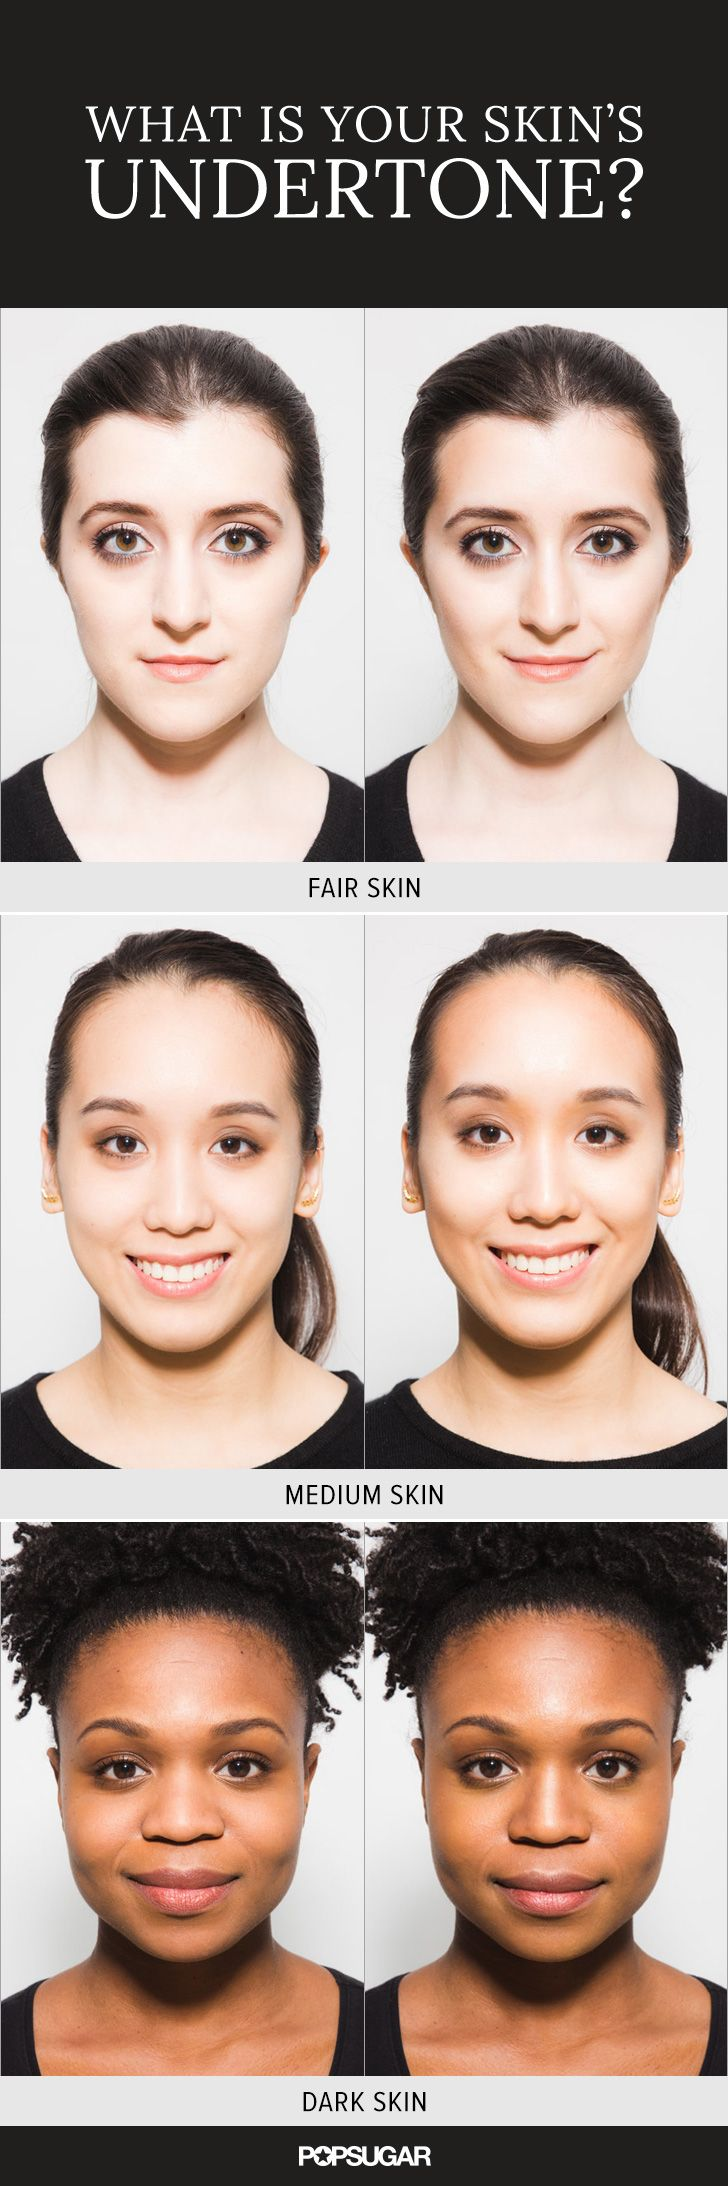 Not sure what your skin's undertone is? Take this easy quiz to find out! Not only will it help you find the perfect foundation for your complexion, but it'll help you figure out which jewelry and clothing colors work best on you.